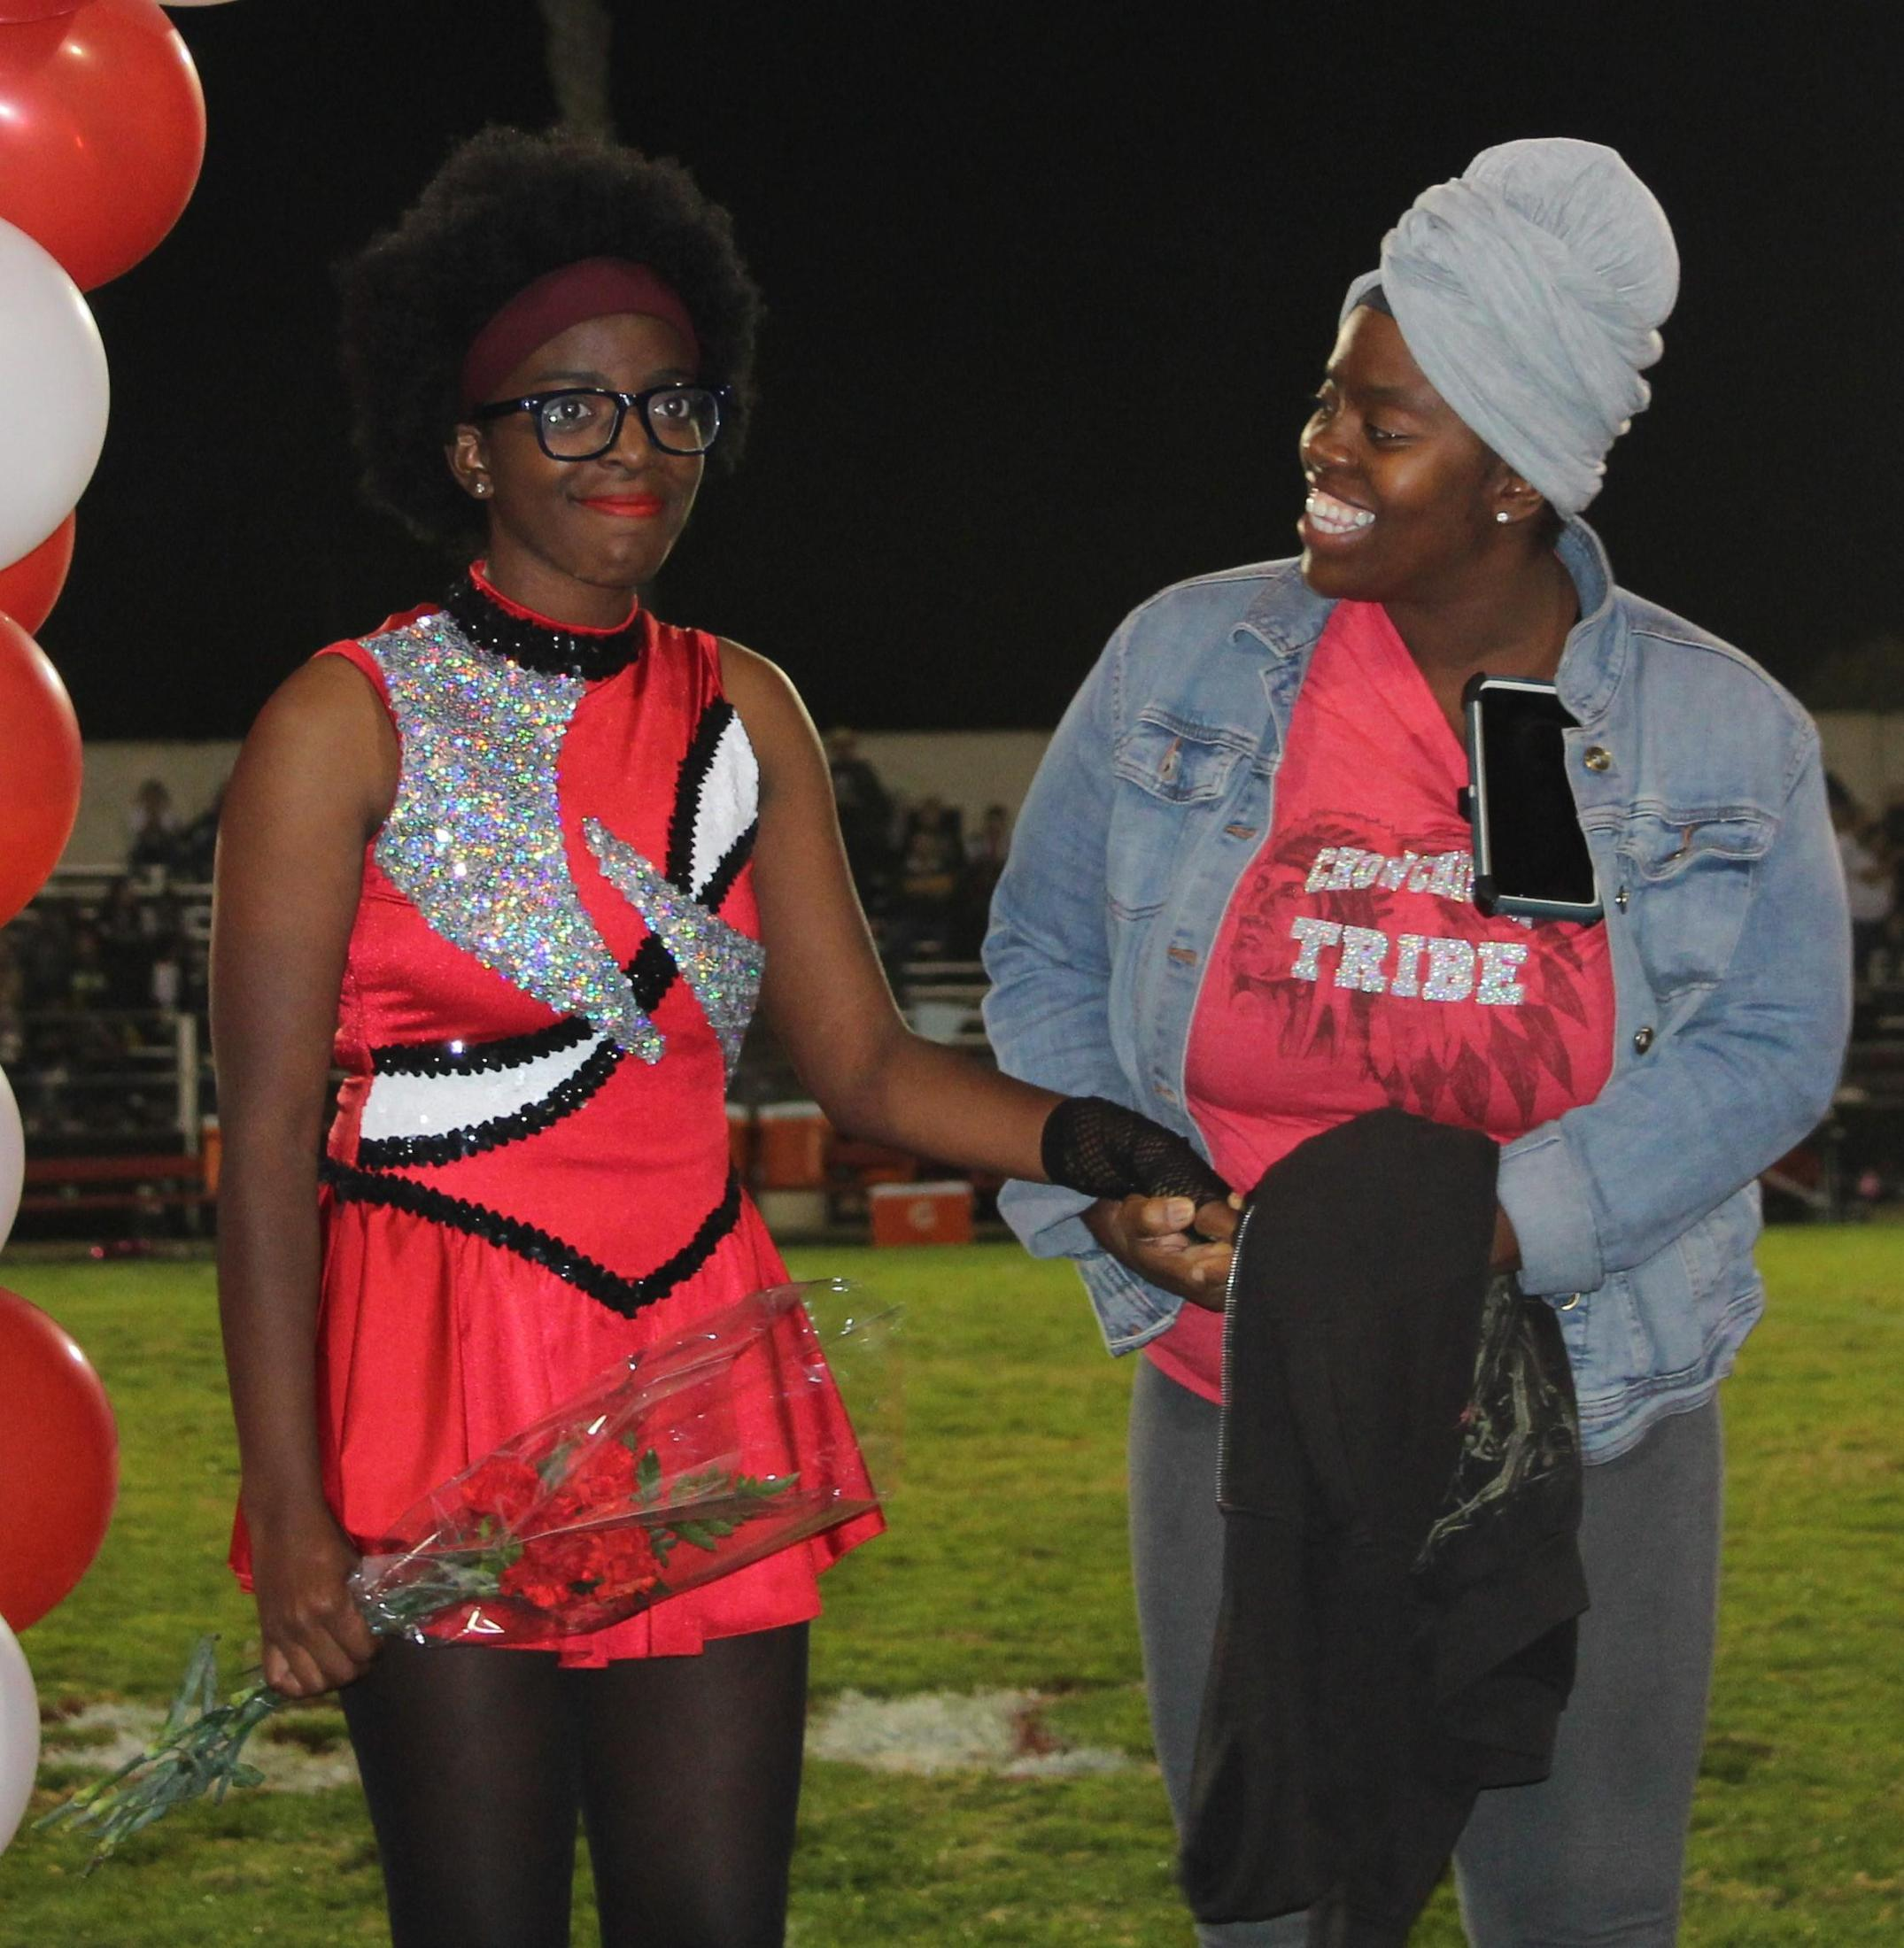 Aoleon Johnson Charles and her supporters at Senior Night.